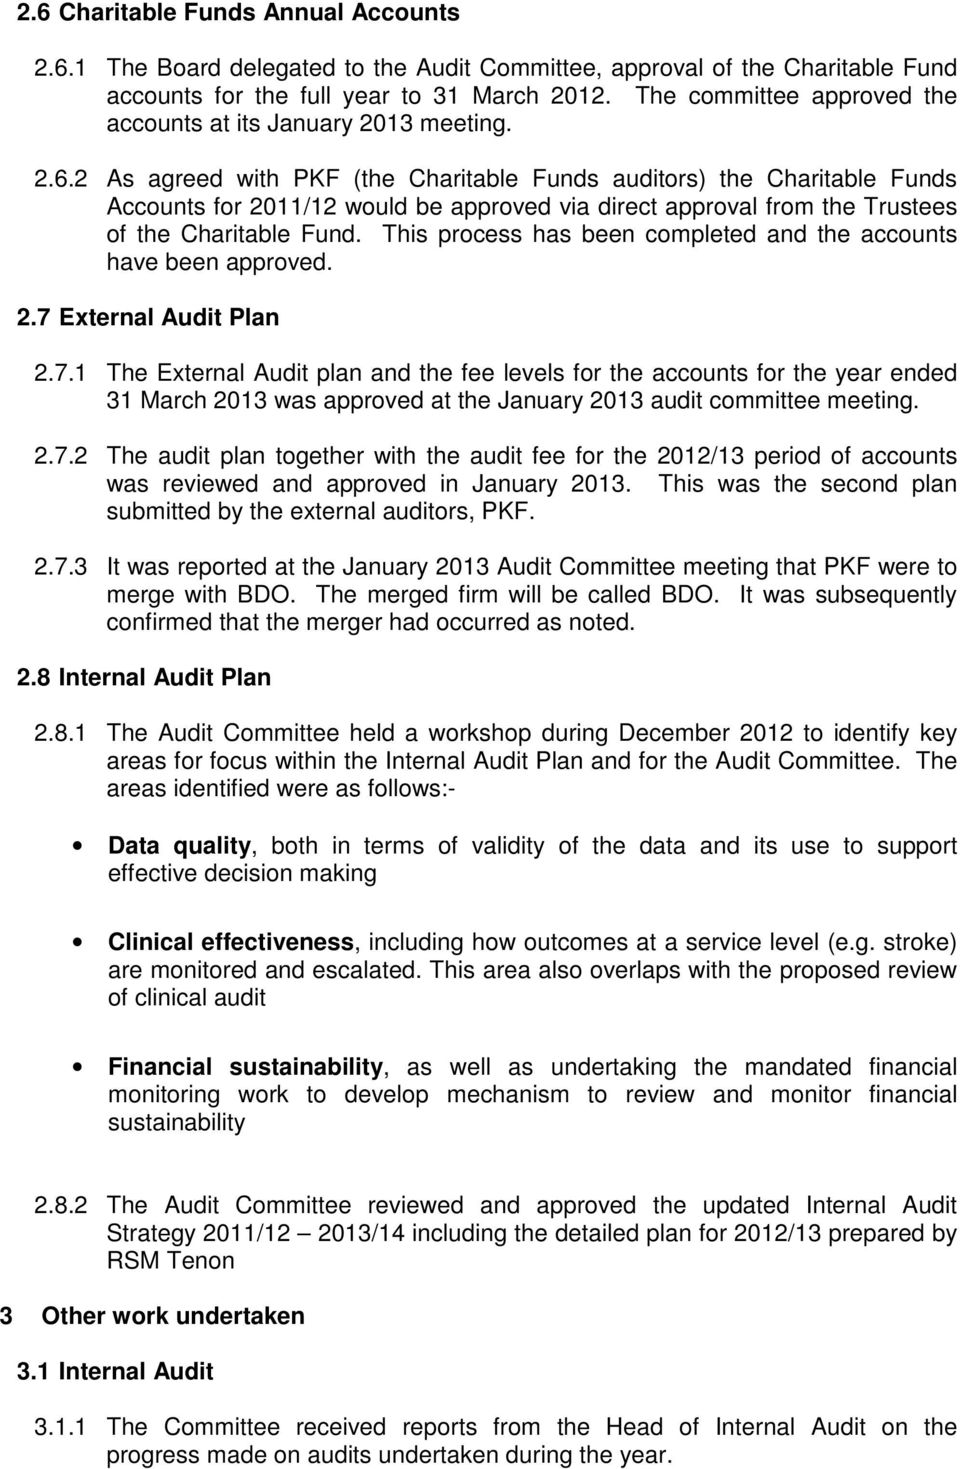 2 As agreed with PKF (the Charitable Funds auditors) the Charitable Funds Accounts for 2011/12 would be approved via direct approval from the Trustees of the Charitable Fund.